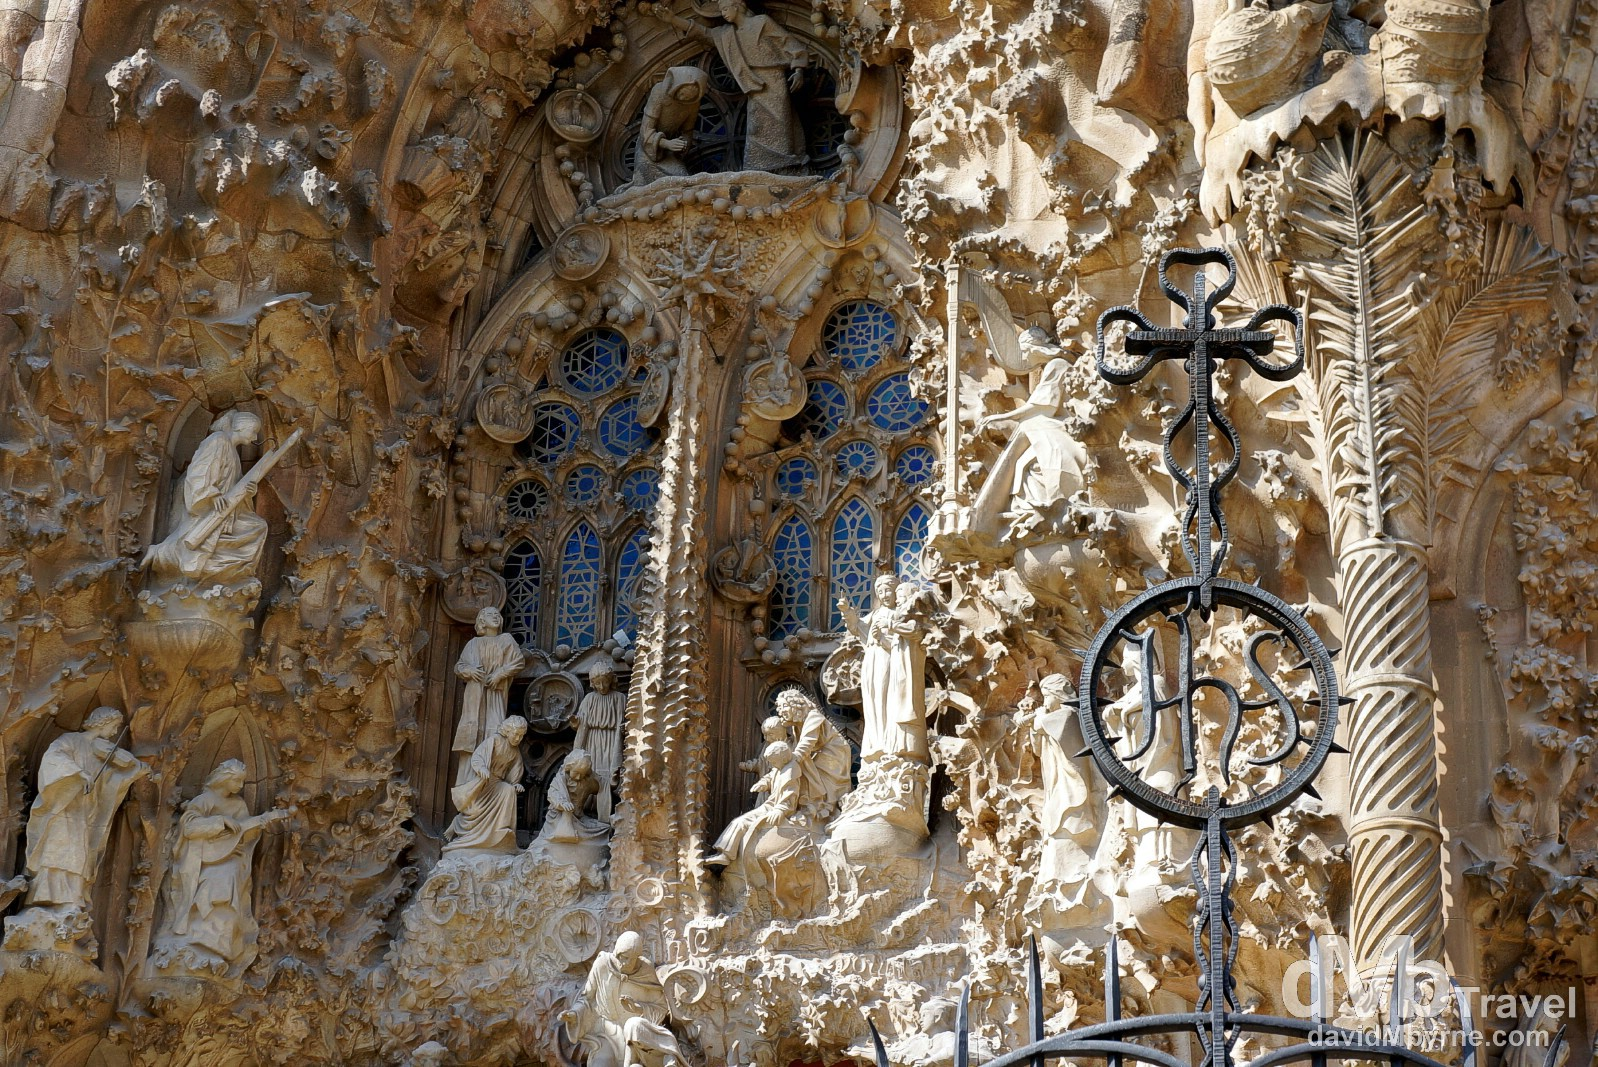 A section of the amazing Nativity facade of the UNESCO-listed Sagrada Familia in Barcelona Spain. June 18th, 2014.